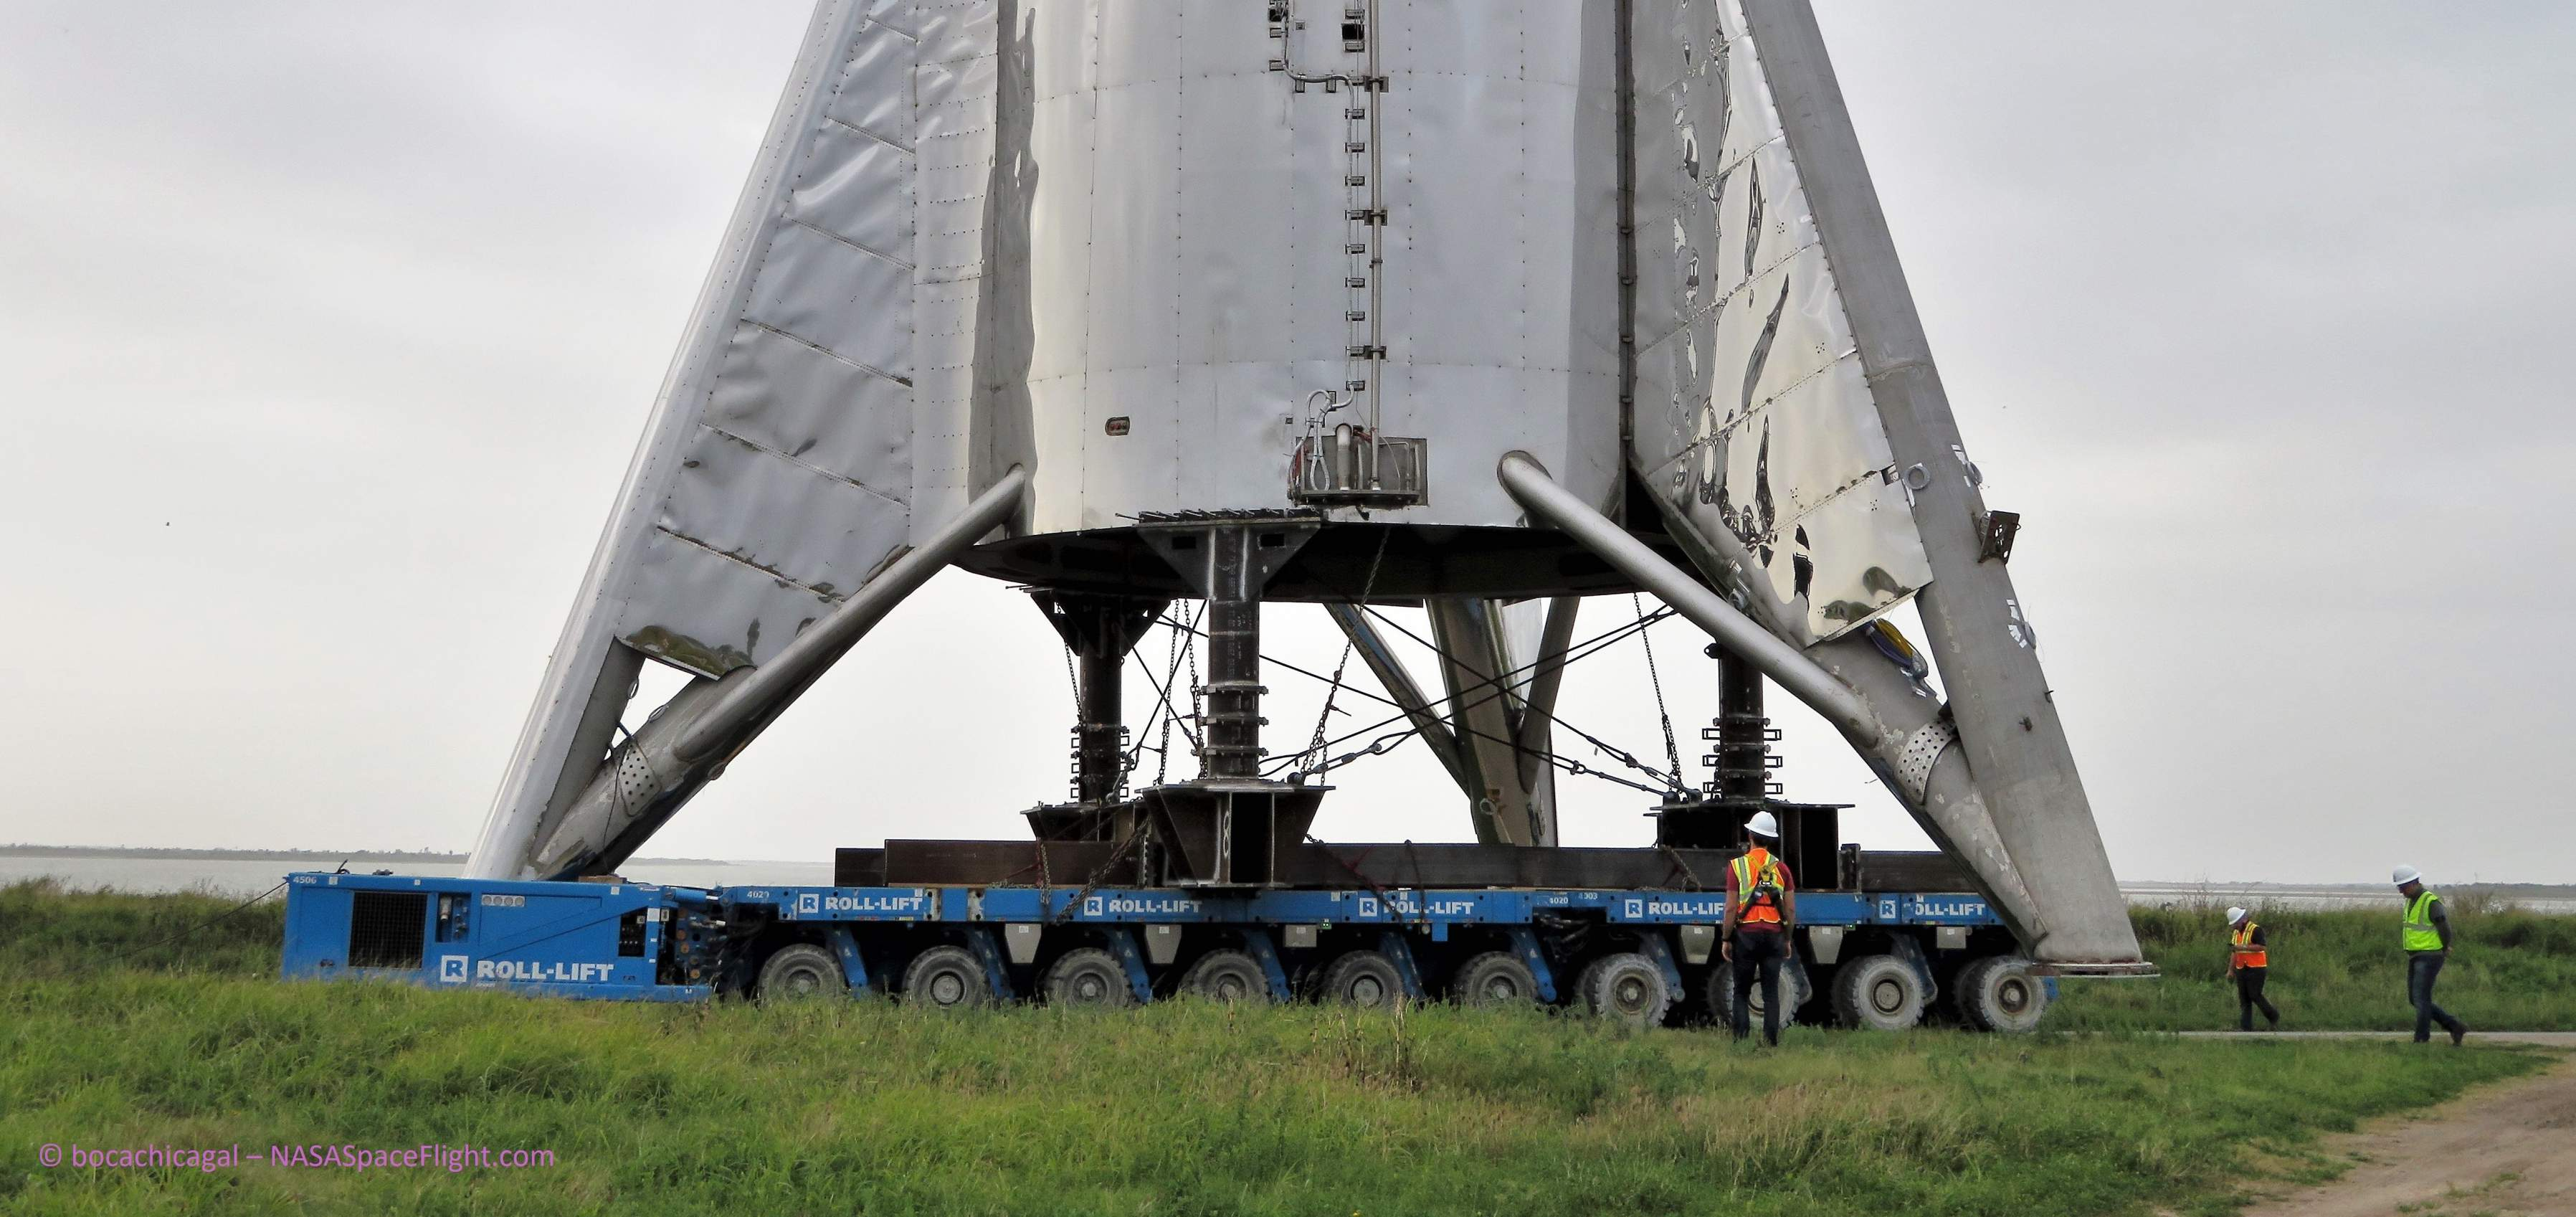 Spacex S Starship Prototype Moved To Launch Pad On New